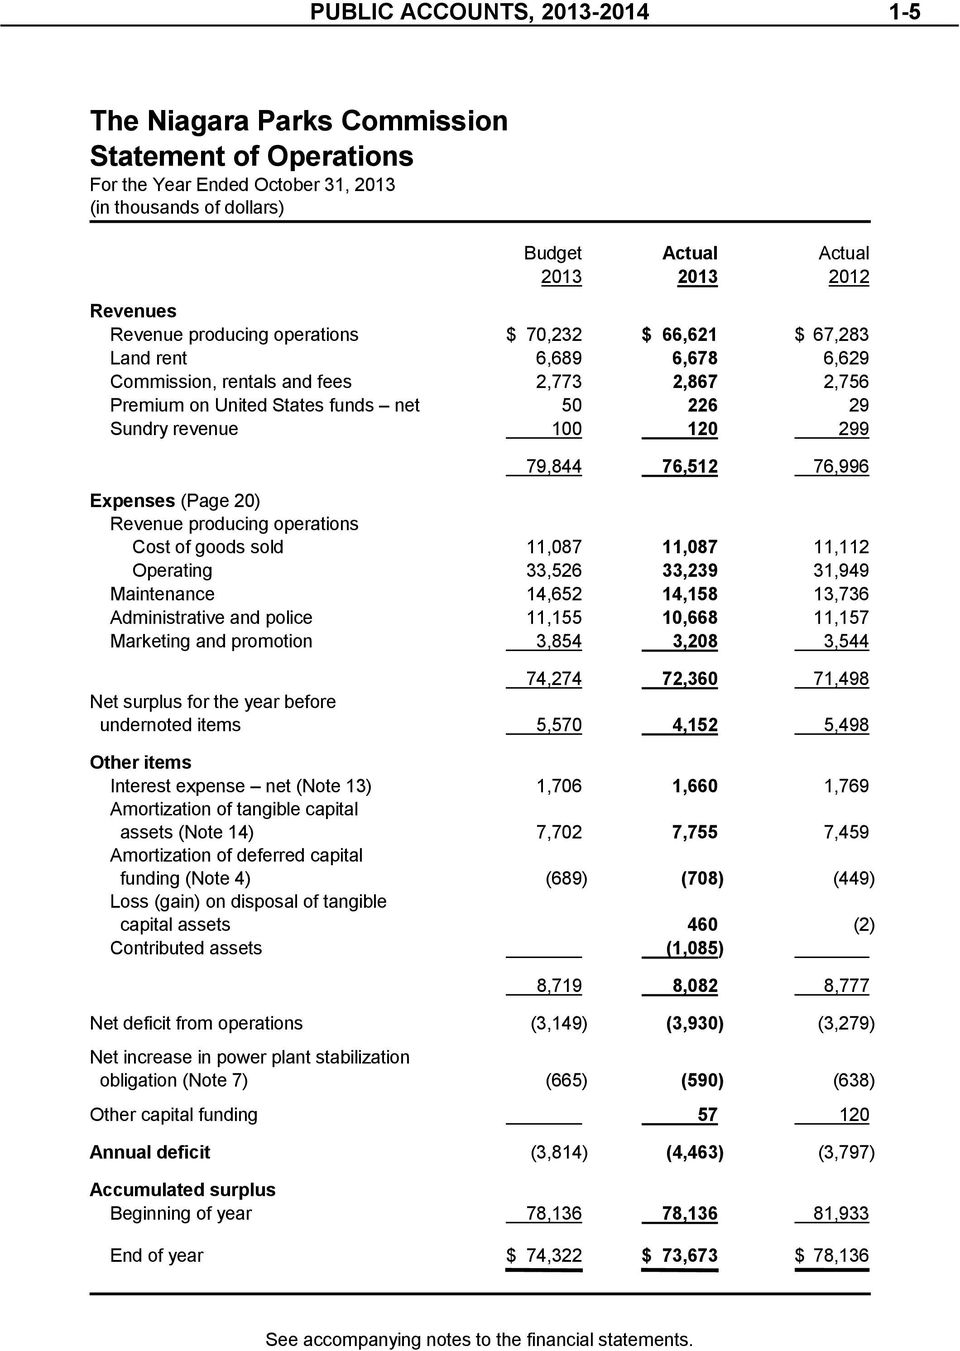 79,844 76,512 76,996 Expenses (Page 20) Revenue producing operations Cost of goods sold 11,087 11,087 11,112 Operating 33,526 33,239 31,949 Maintenance 14,652 14,158 13,736 Administrative and police